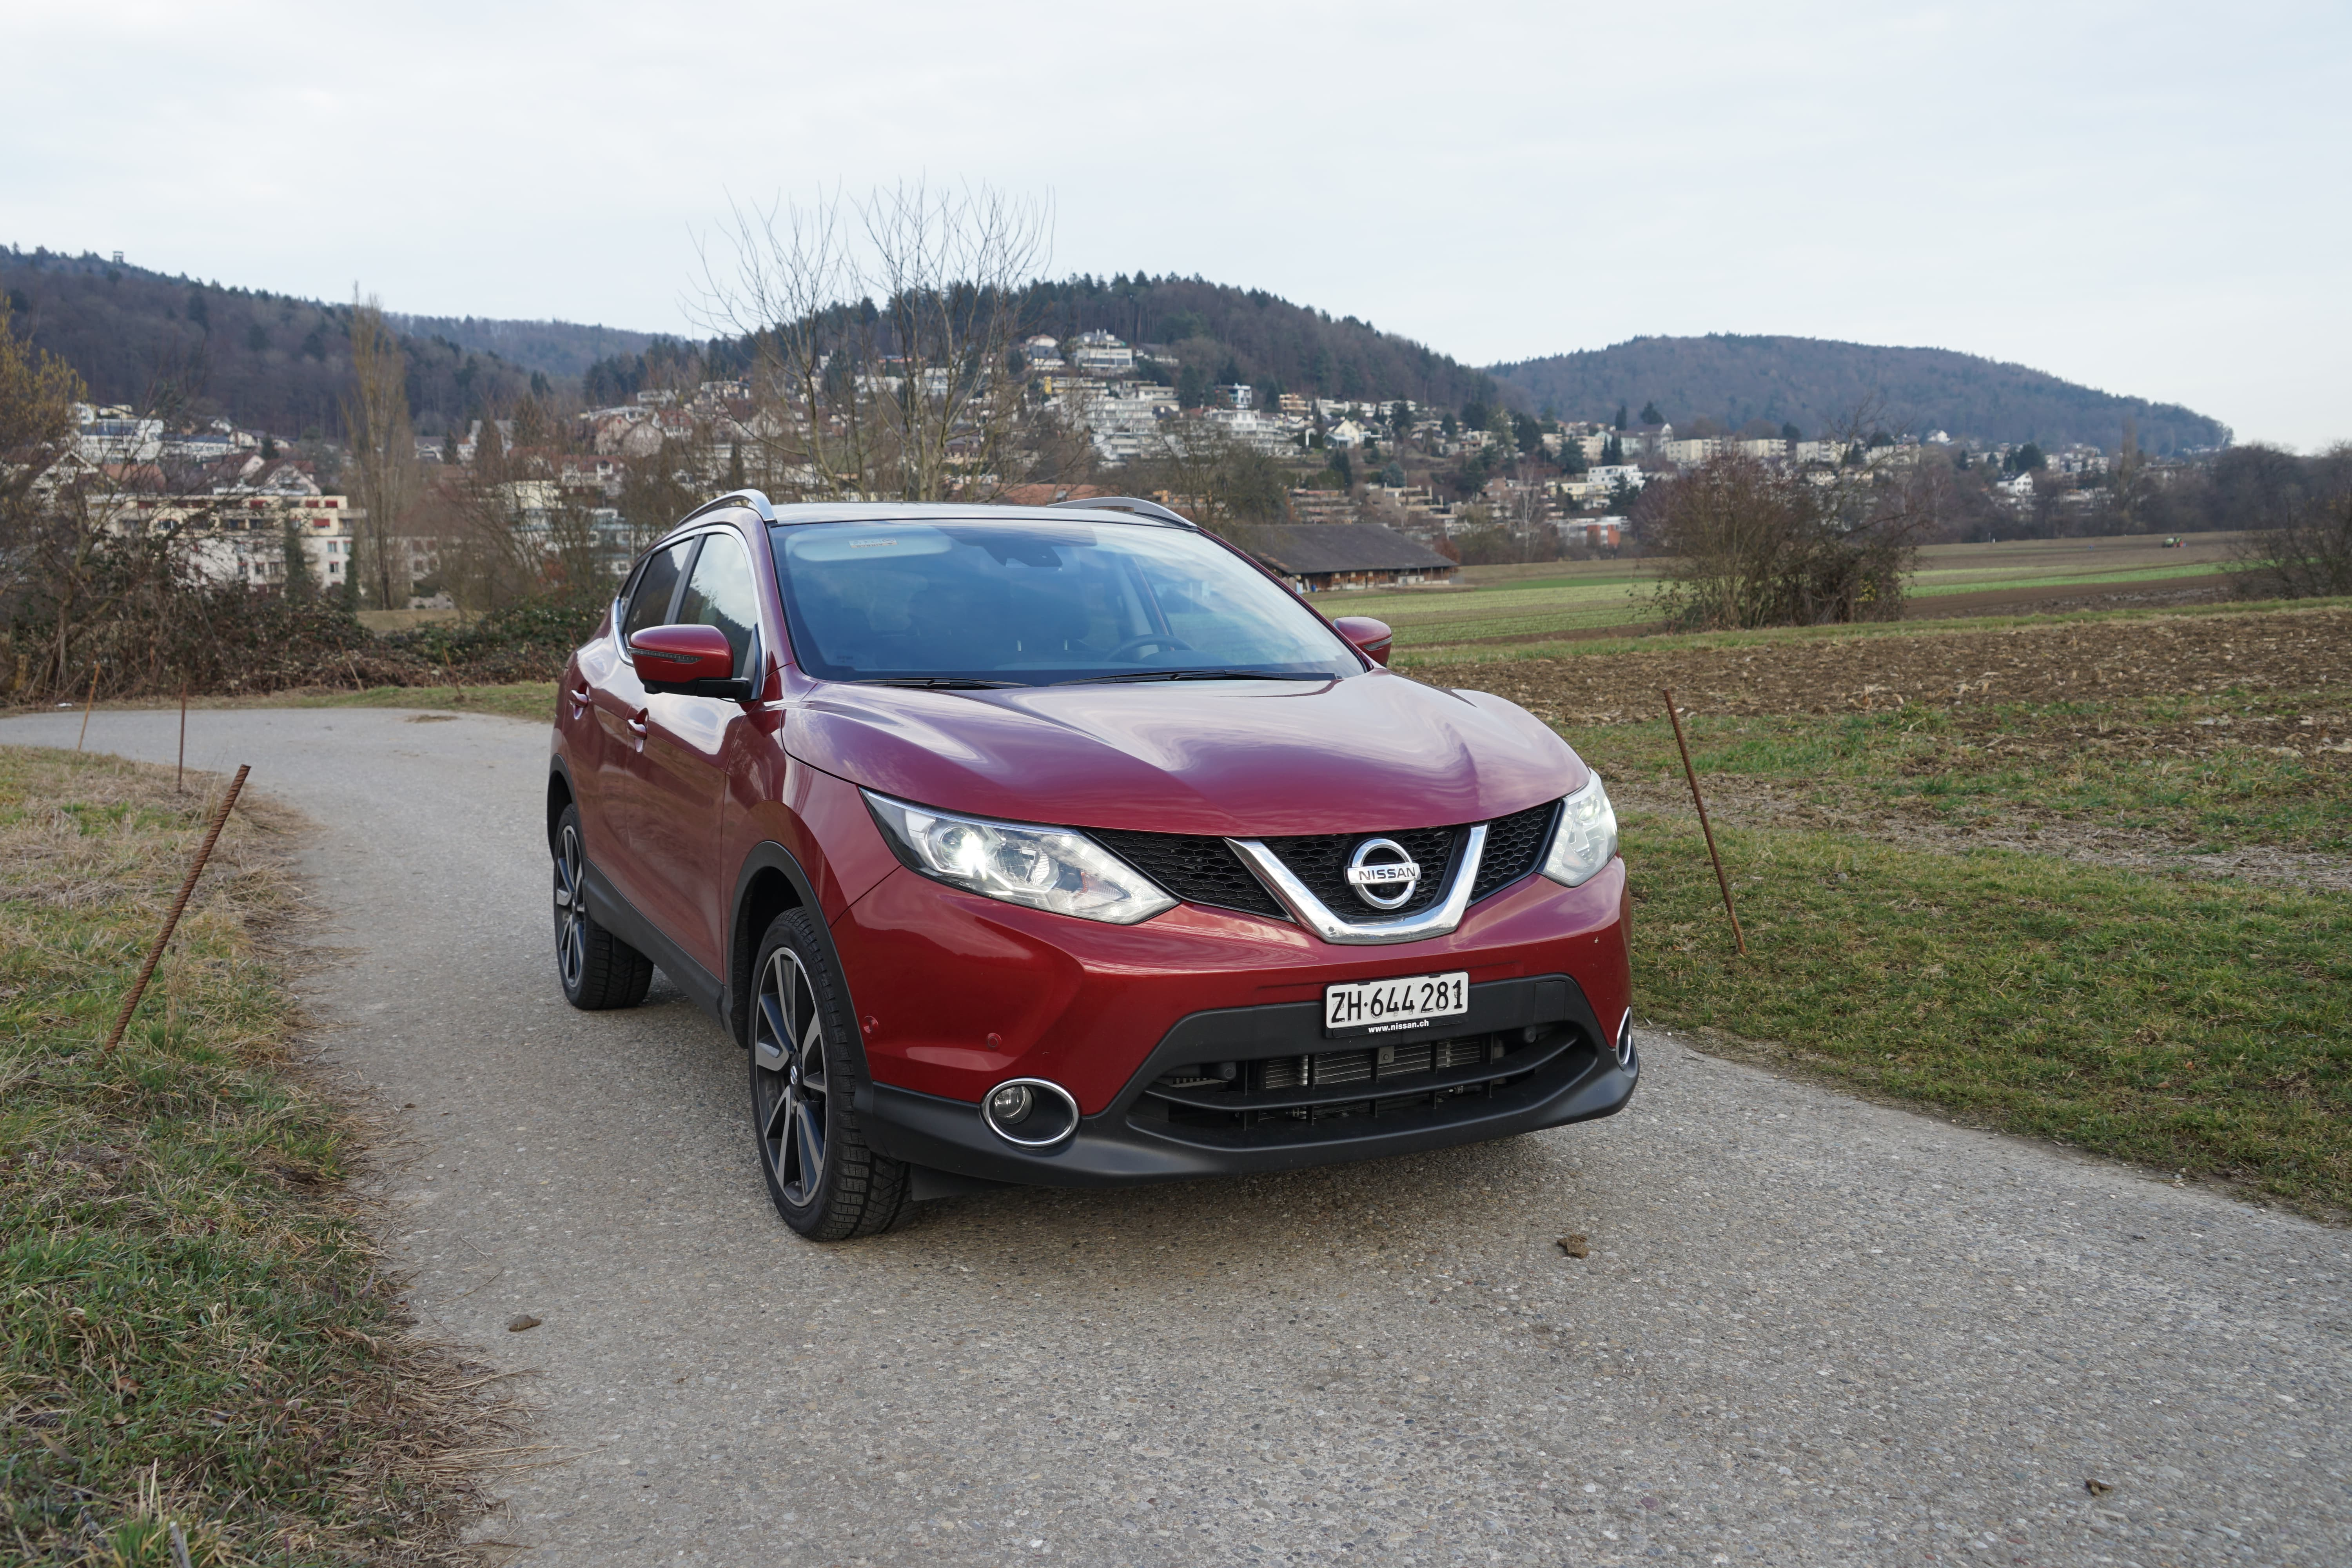 nissan qashqai nissan qashqai 2016 im test. Black Bedroom Furniture Sets. Home Design Ideas